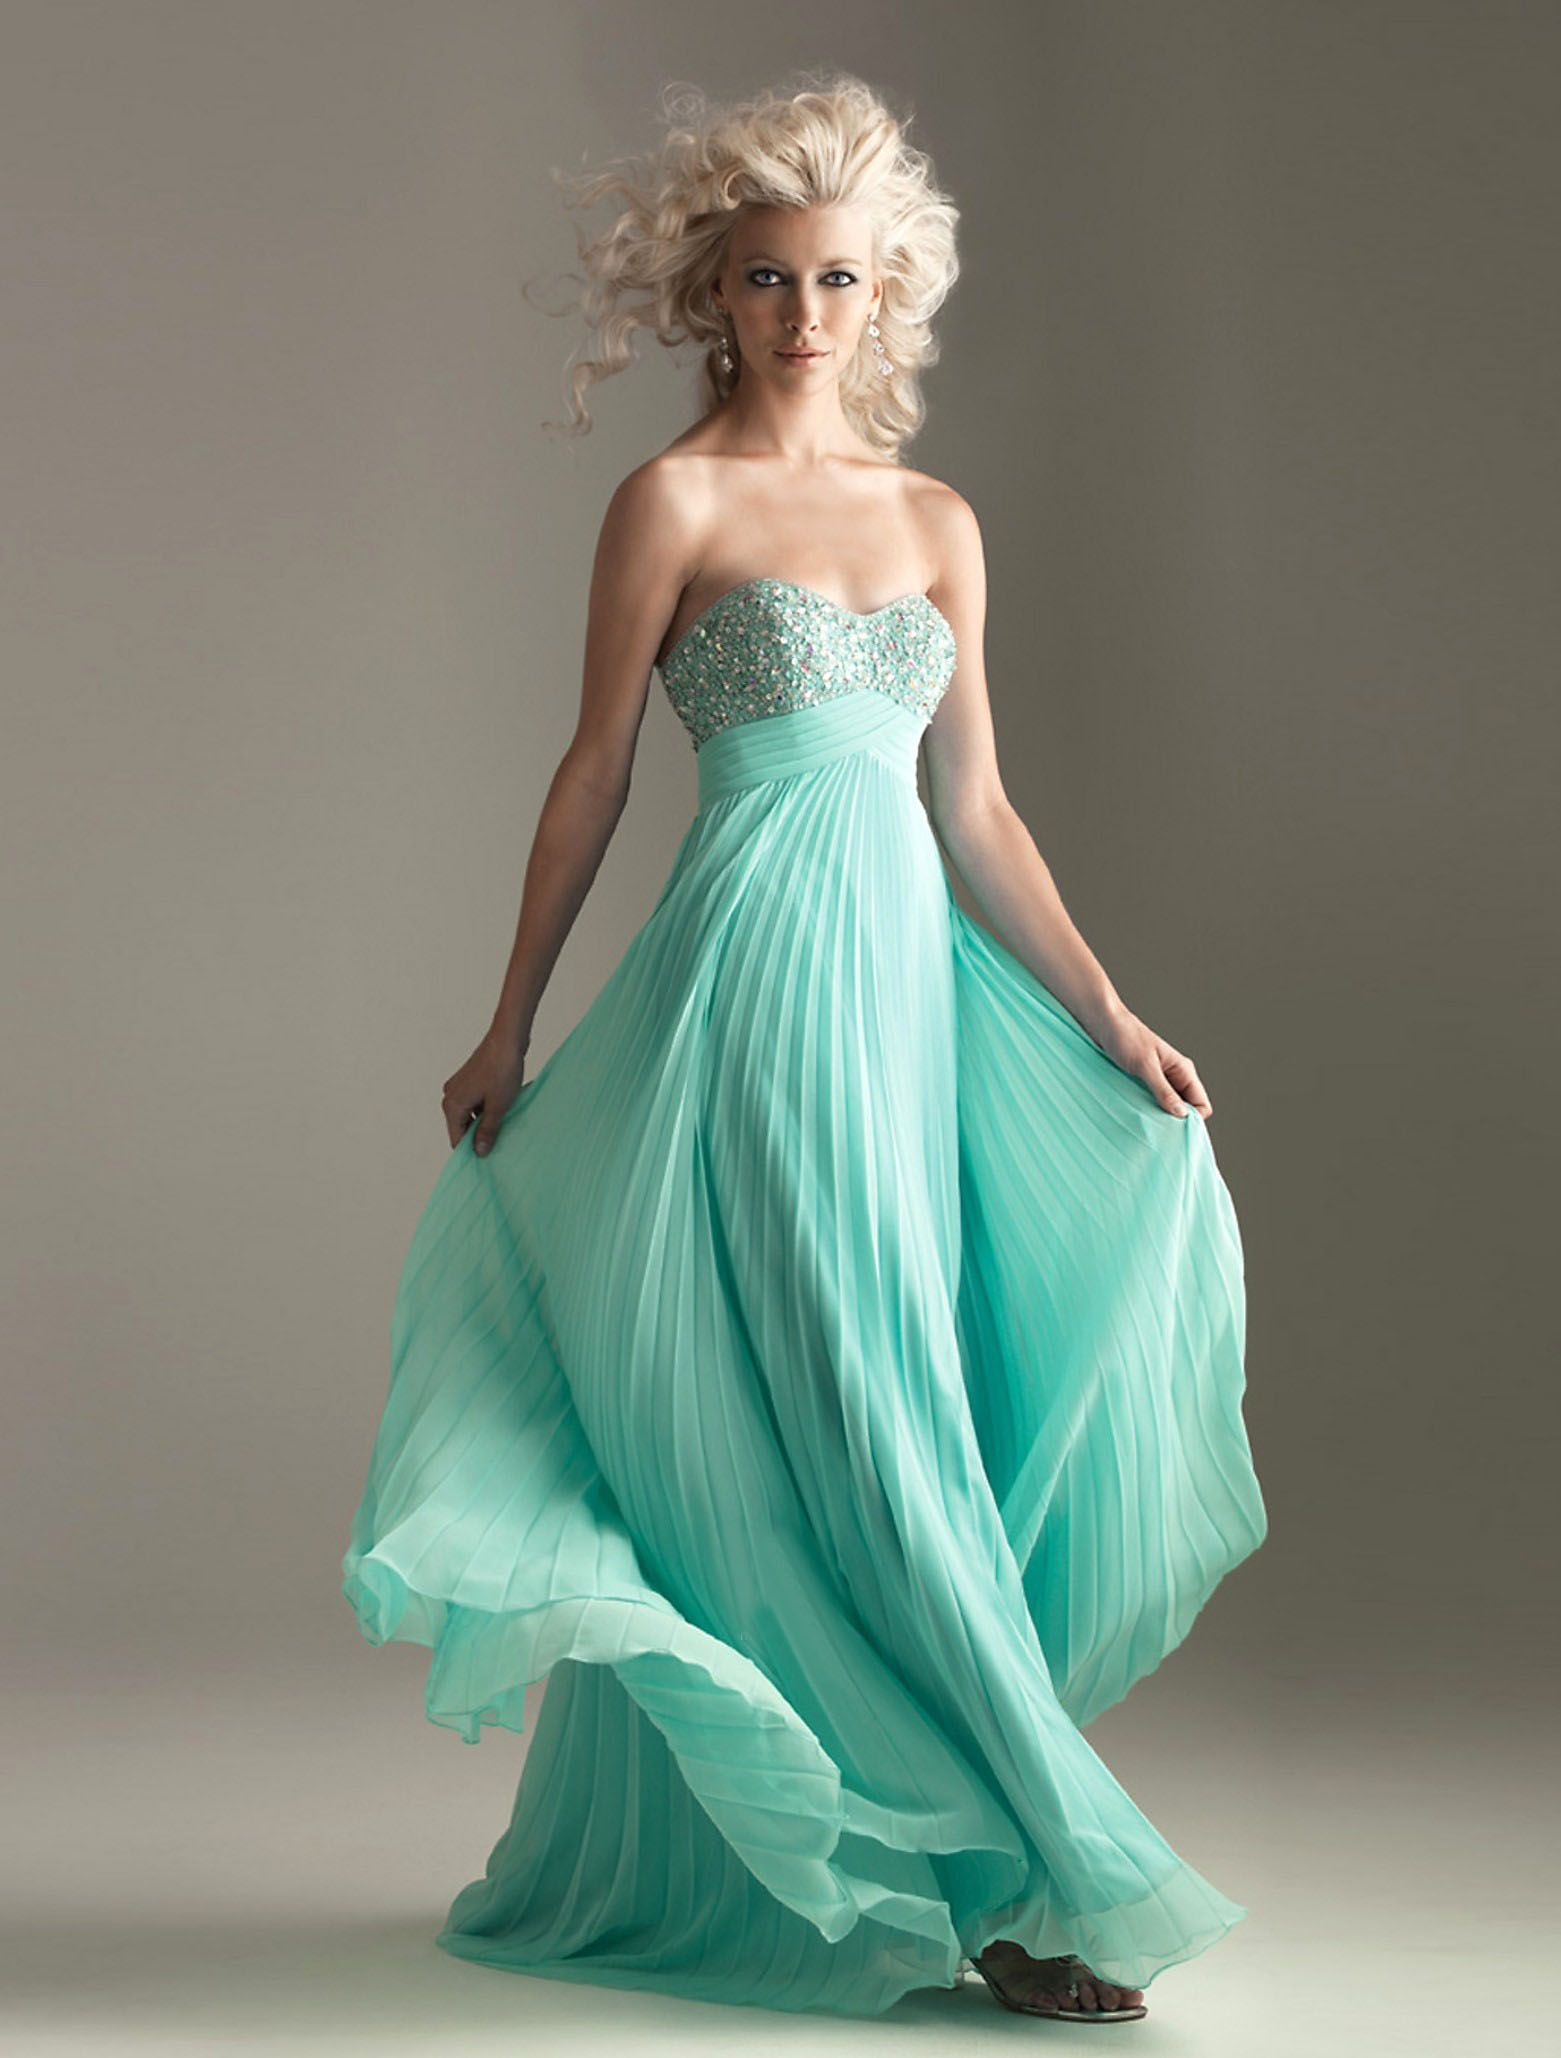 Light blue to turquoise and up top full of sparkles | PROM<3 ...